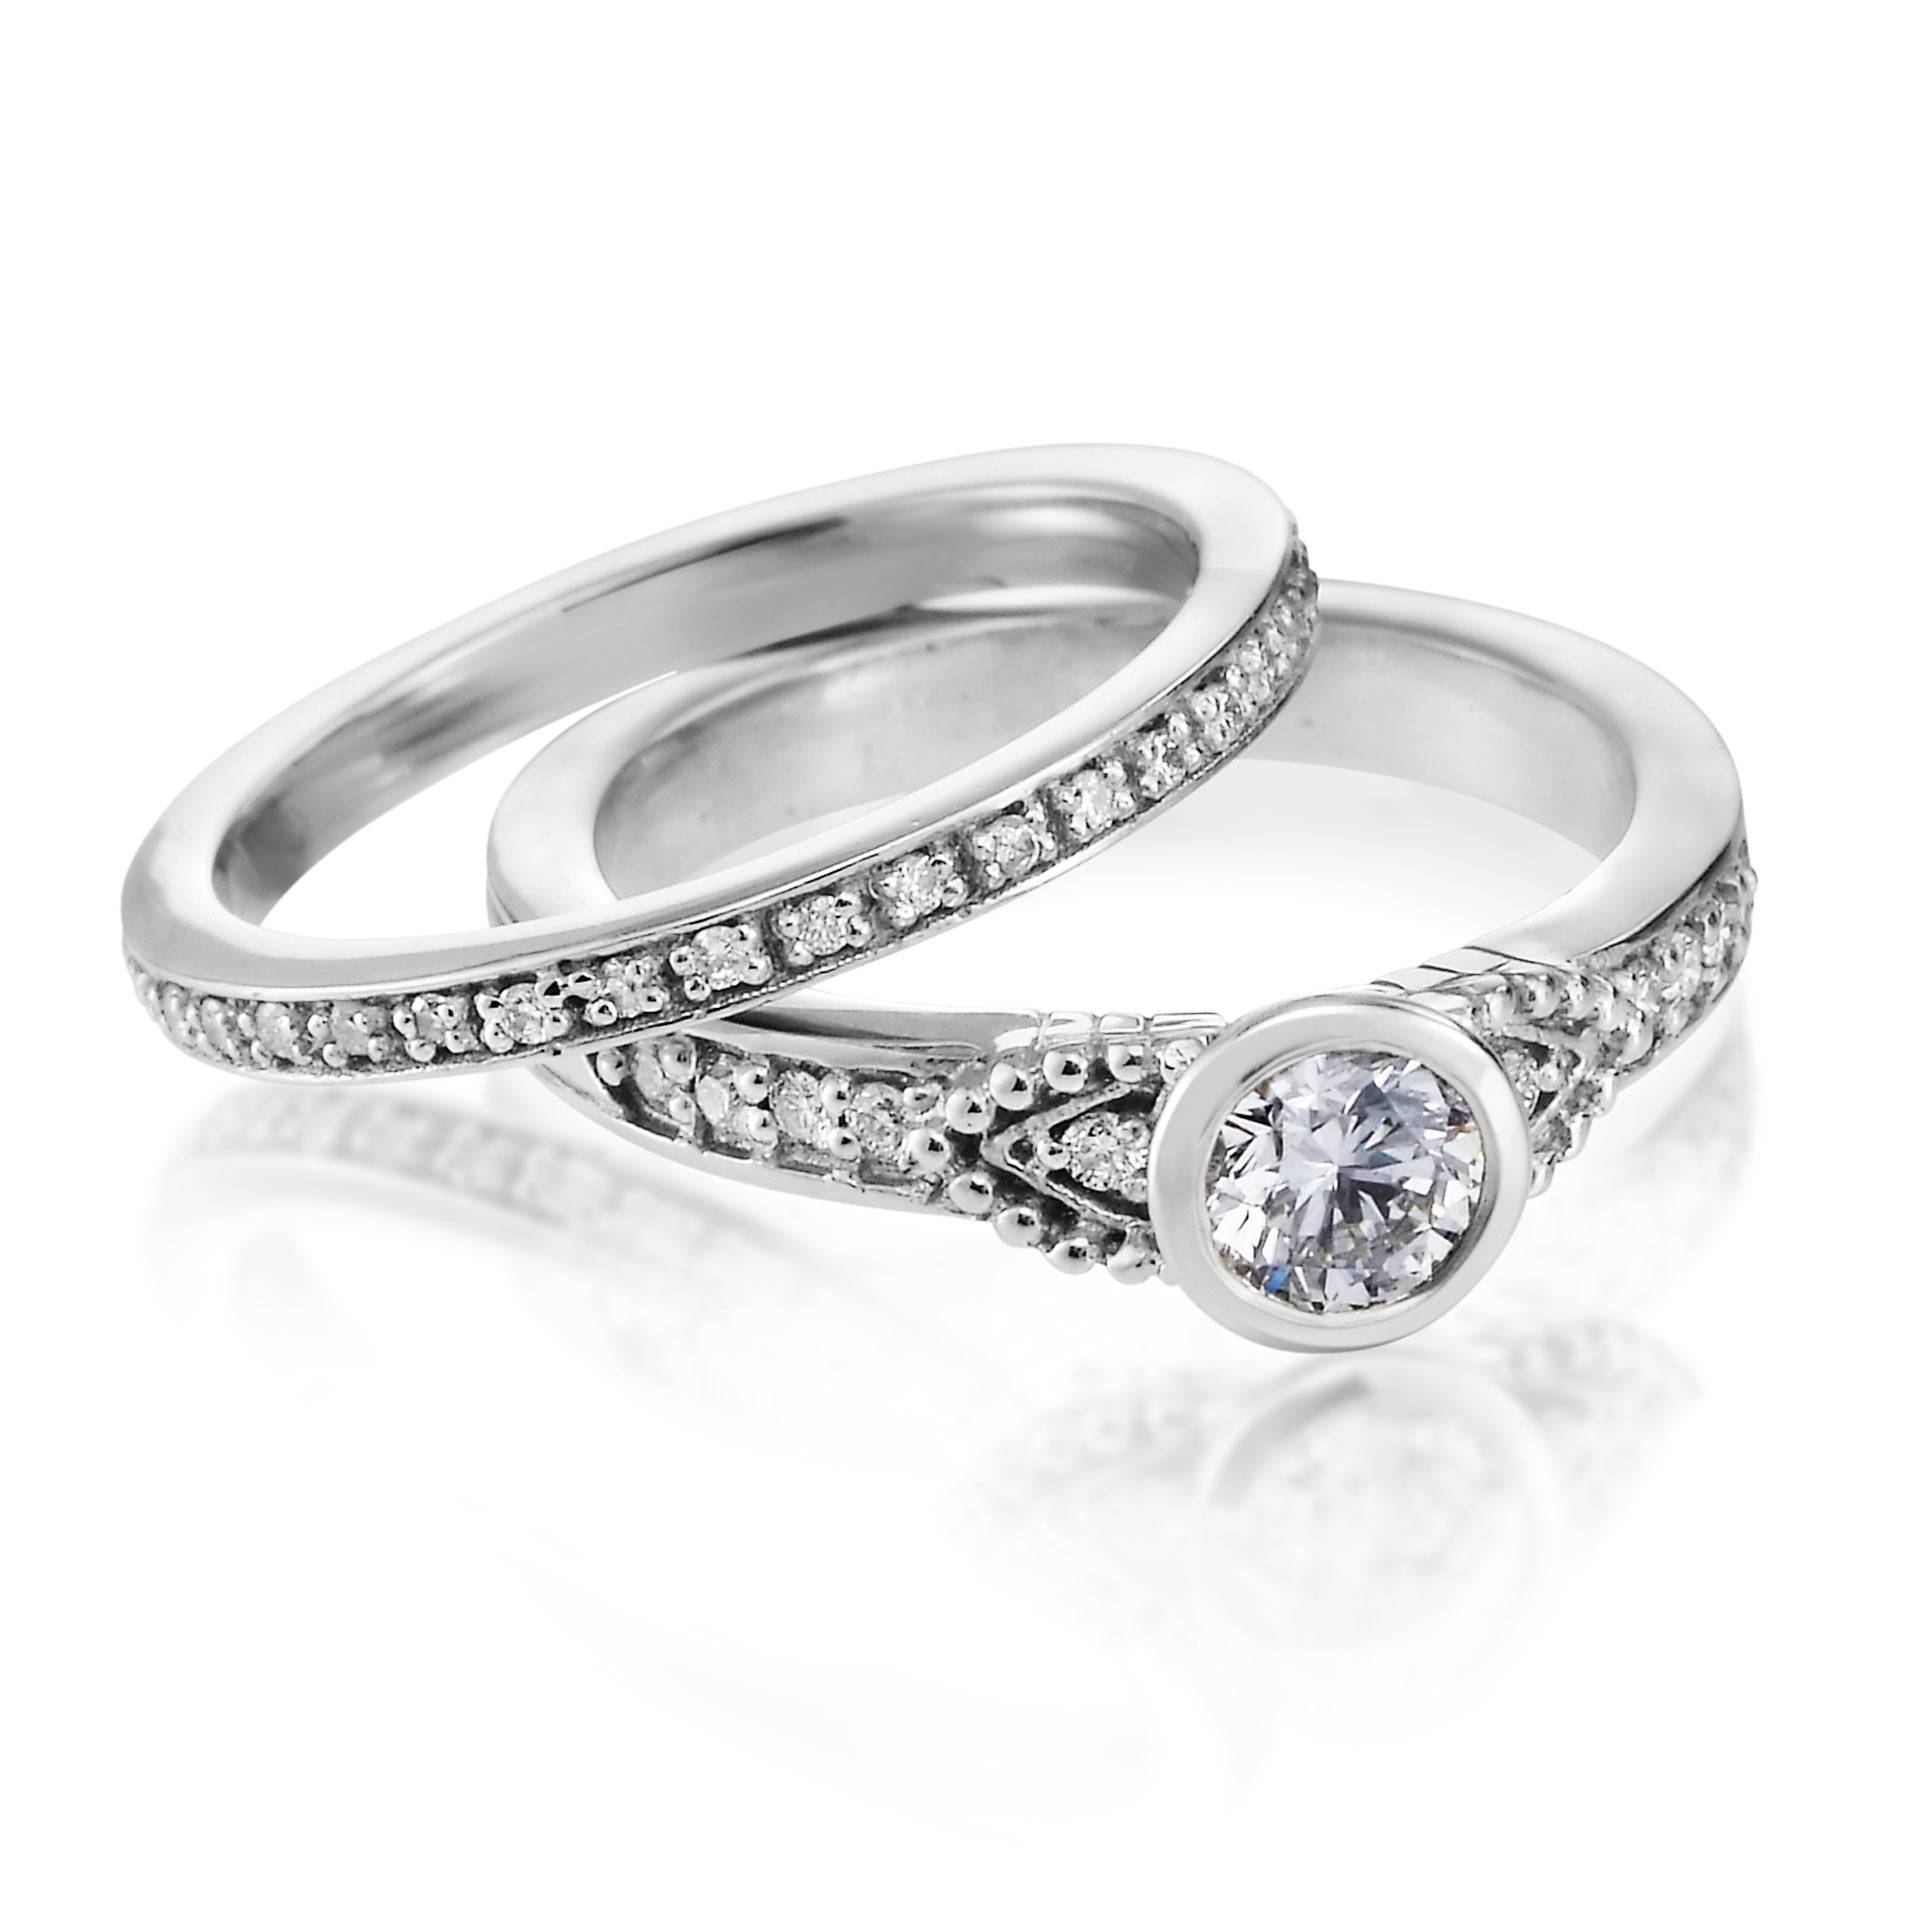 Simple Silver Diamond Wedding Ringswedwebtalks | Wedwebtalks Throughout Silver Diamond Wedding Rings (View 4 of 15)